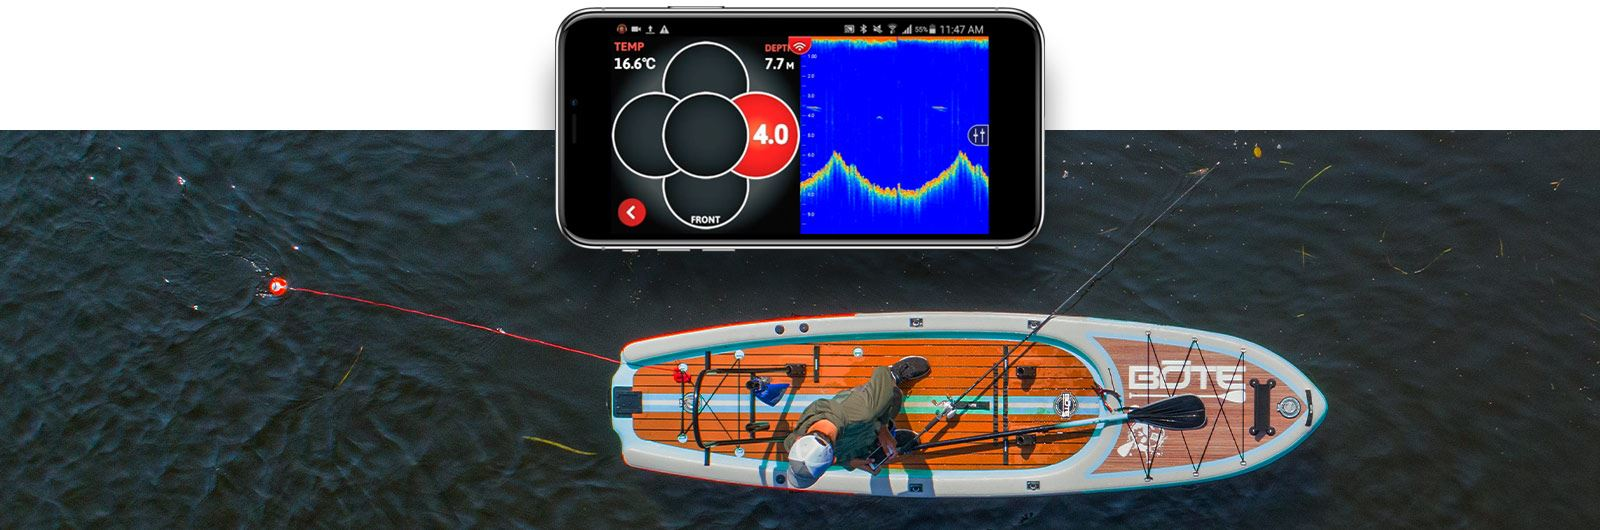 FishHunter_5_FW-phone.jpg